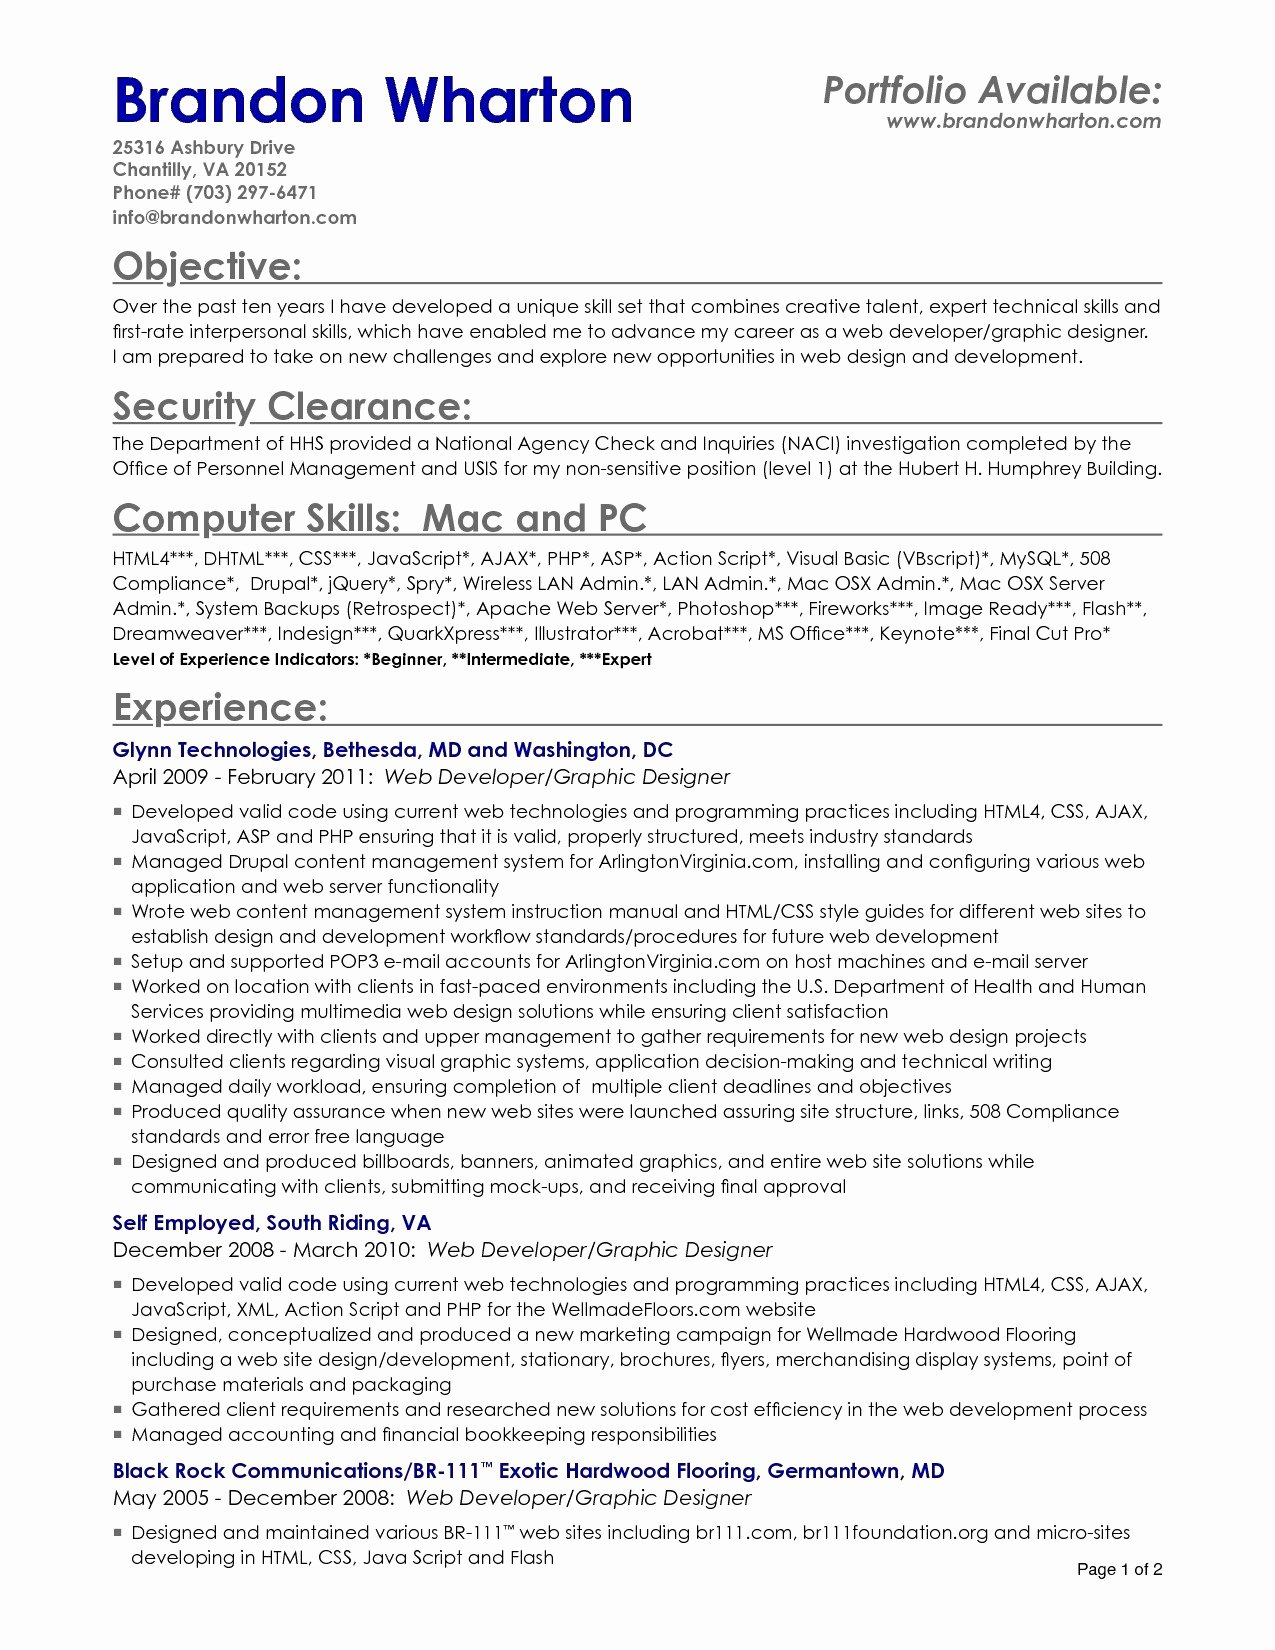 resume template mac word 2011